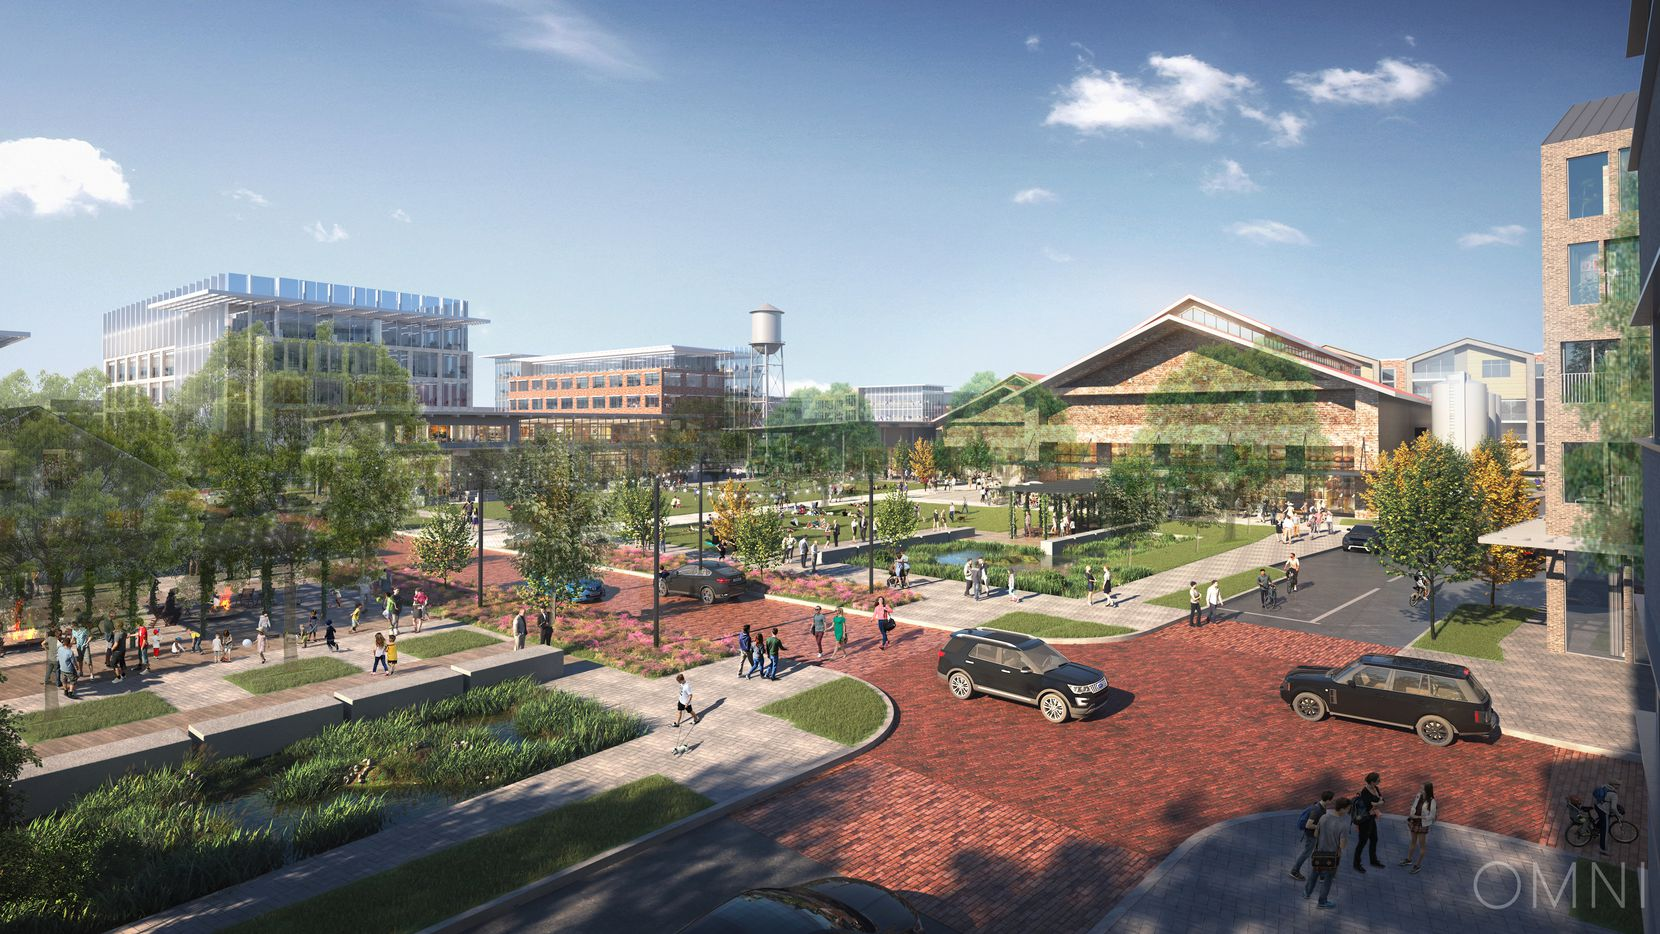 The 135-acre Farm development in Allen is planned for 1.6 million square feet of offices.